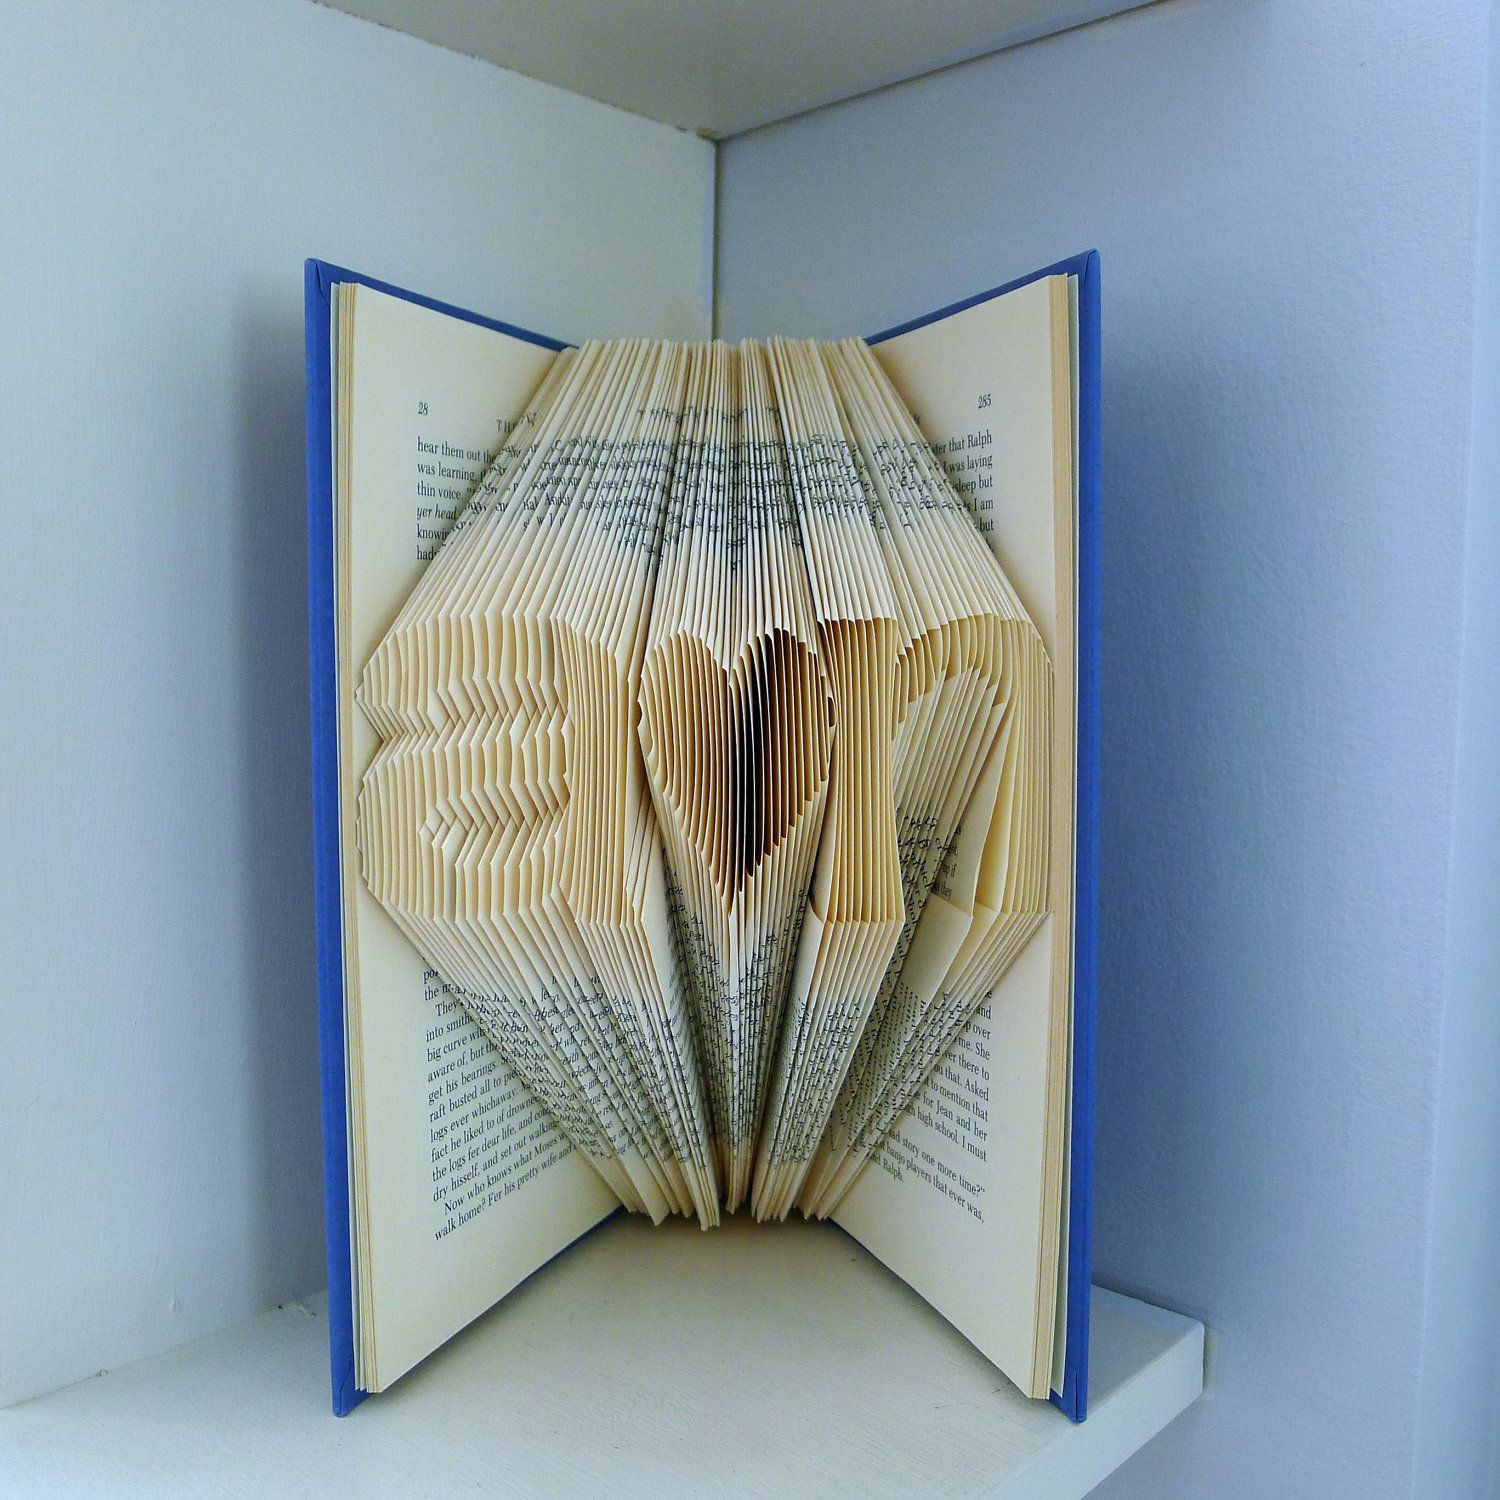 Paper Anniversary Gifts For Him Part - 43: First Anniversary Gift For Boyfriend - Paper Anniversary Folded Book  Sculpture Gift - Handmade - Gift